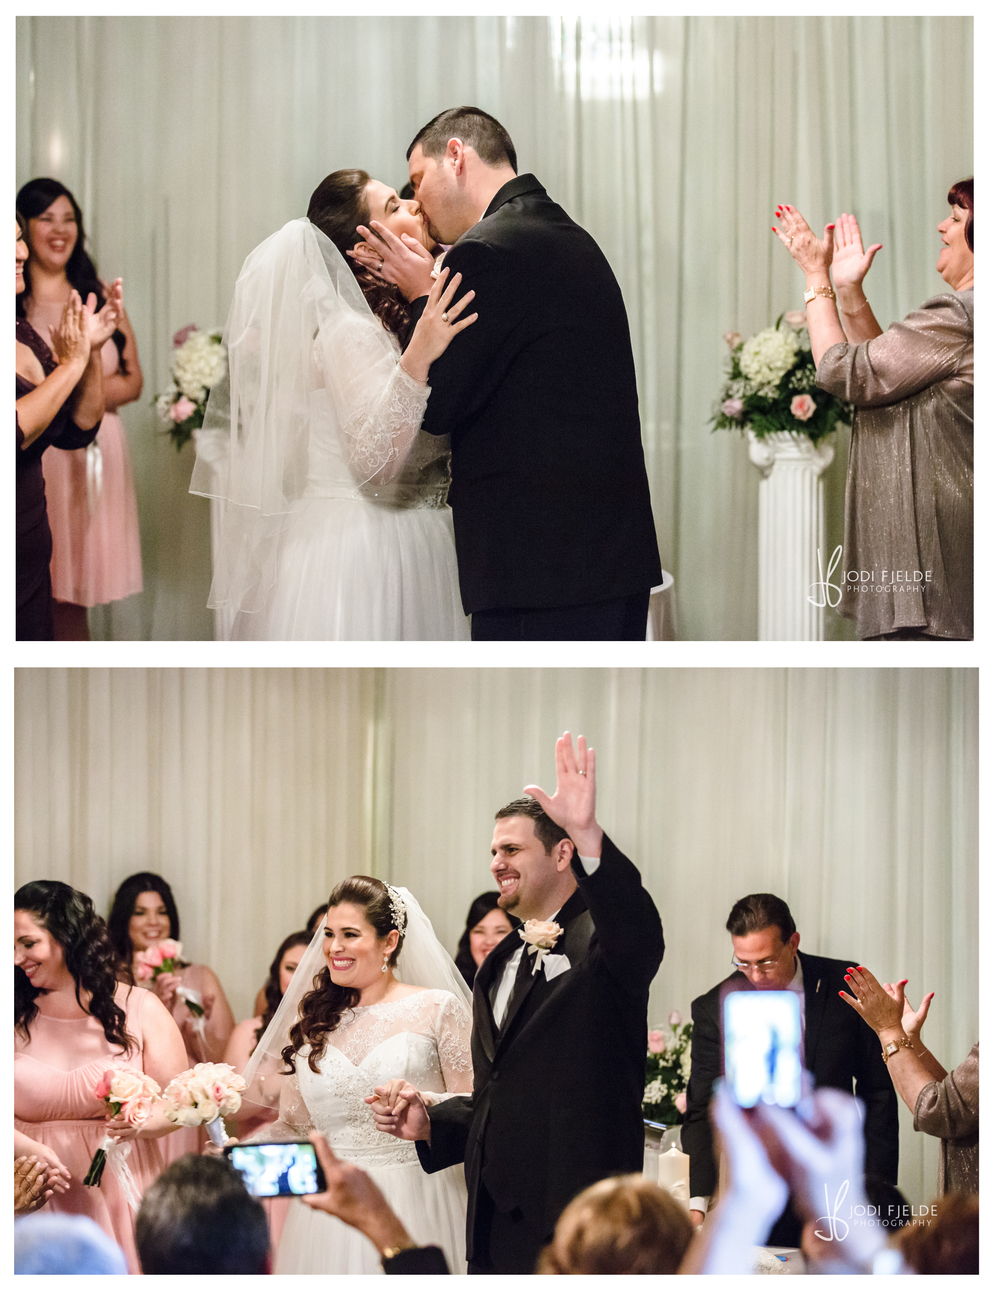 Ballroom Wedding_Ft Lauderdale_Florida_wedding_Maria_&_Juan_photography_jodi_Fjelde_photography-11.jpg